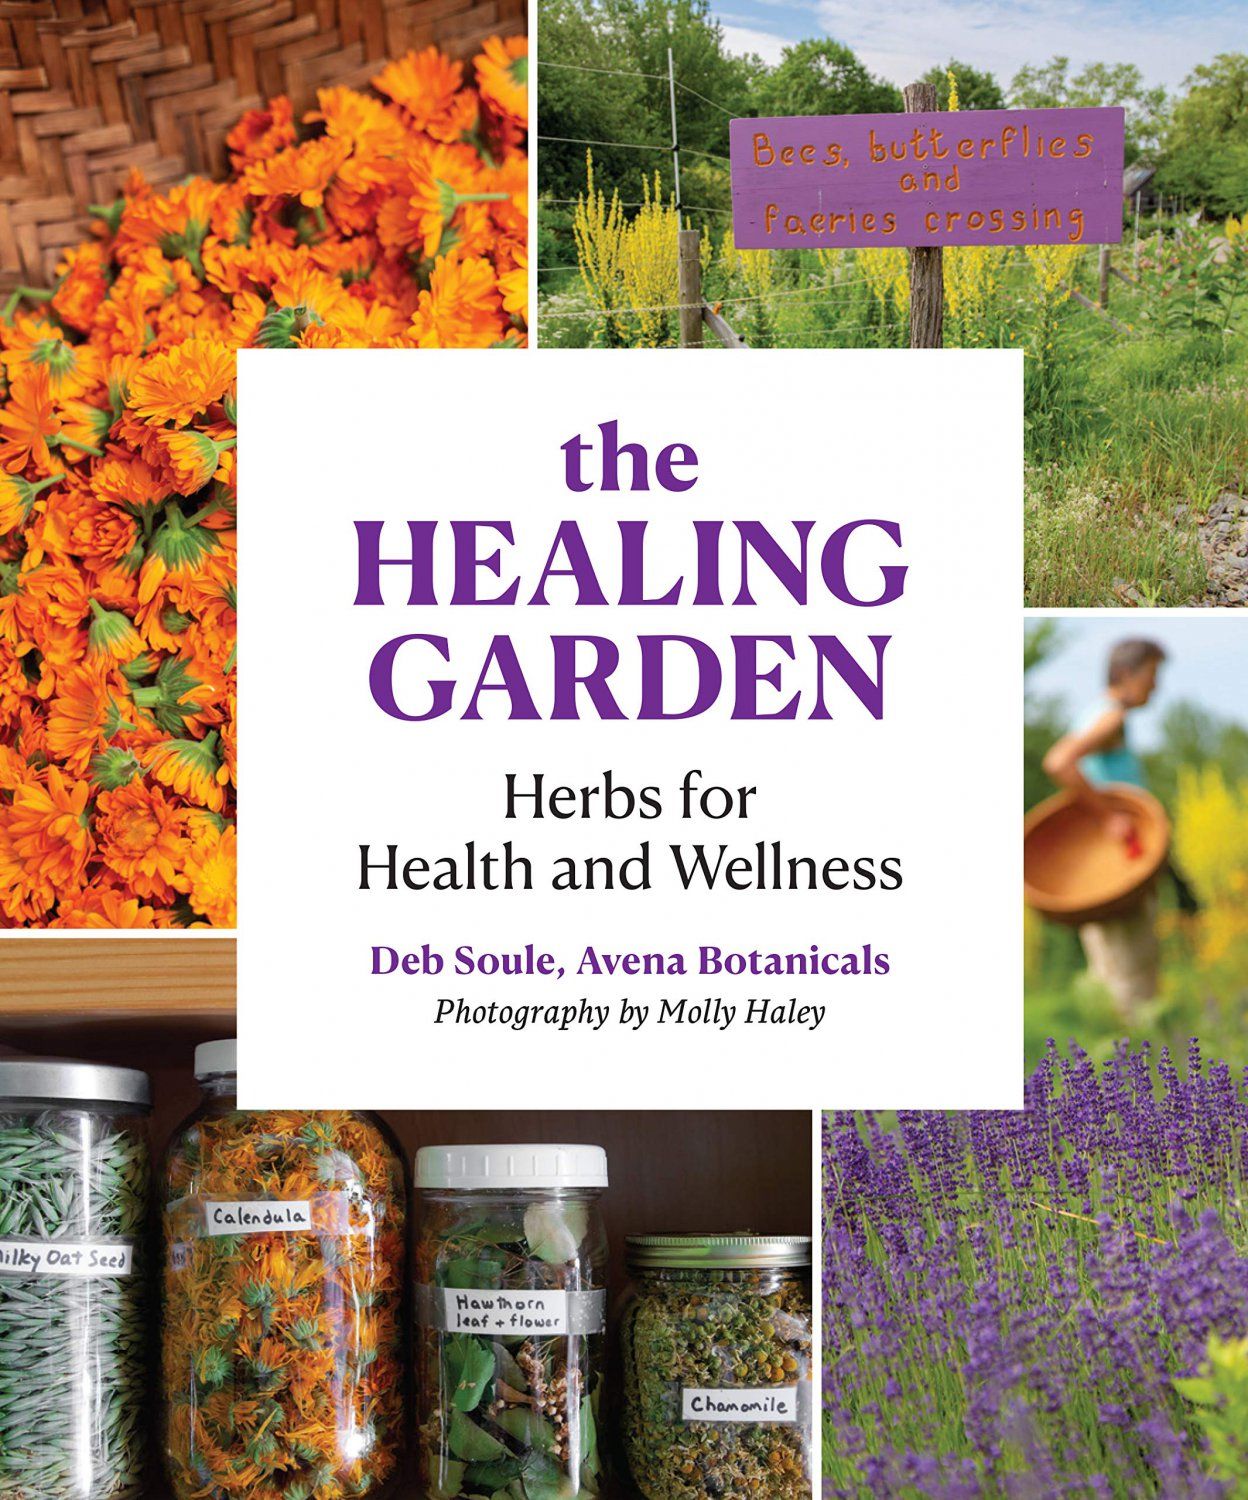 The Healing Garden: Herbs for Health and Wellness Paperback